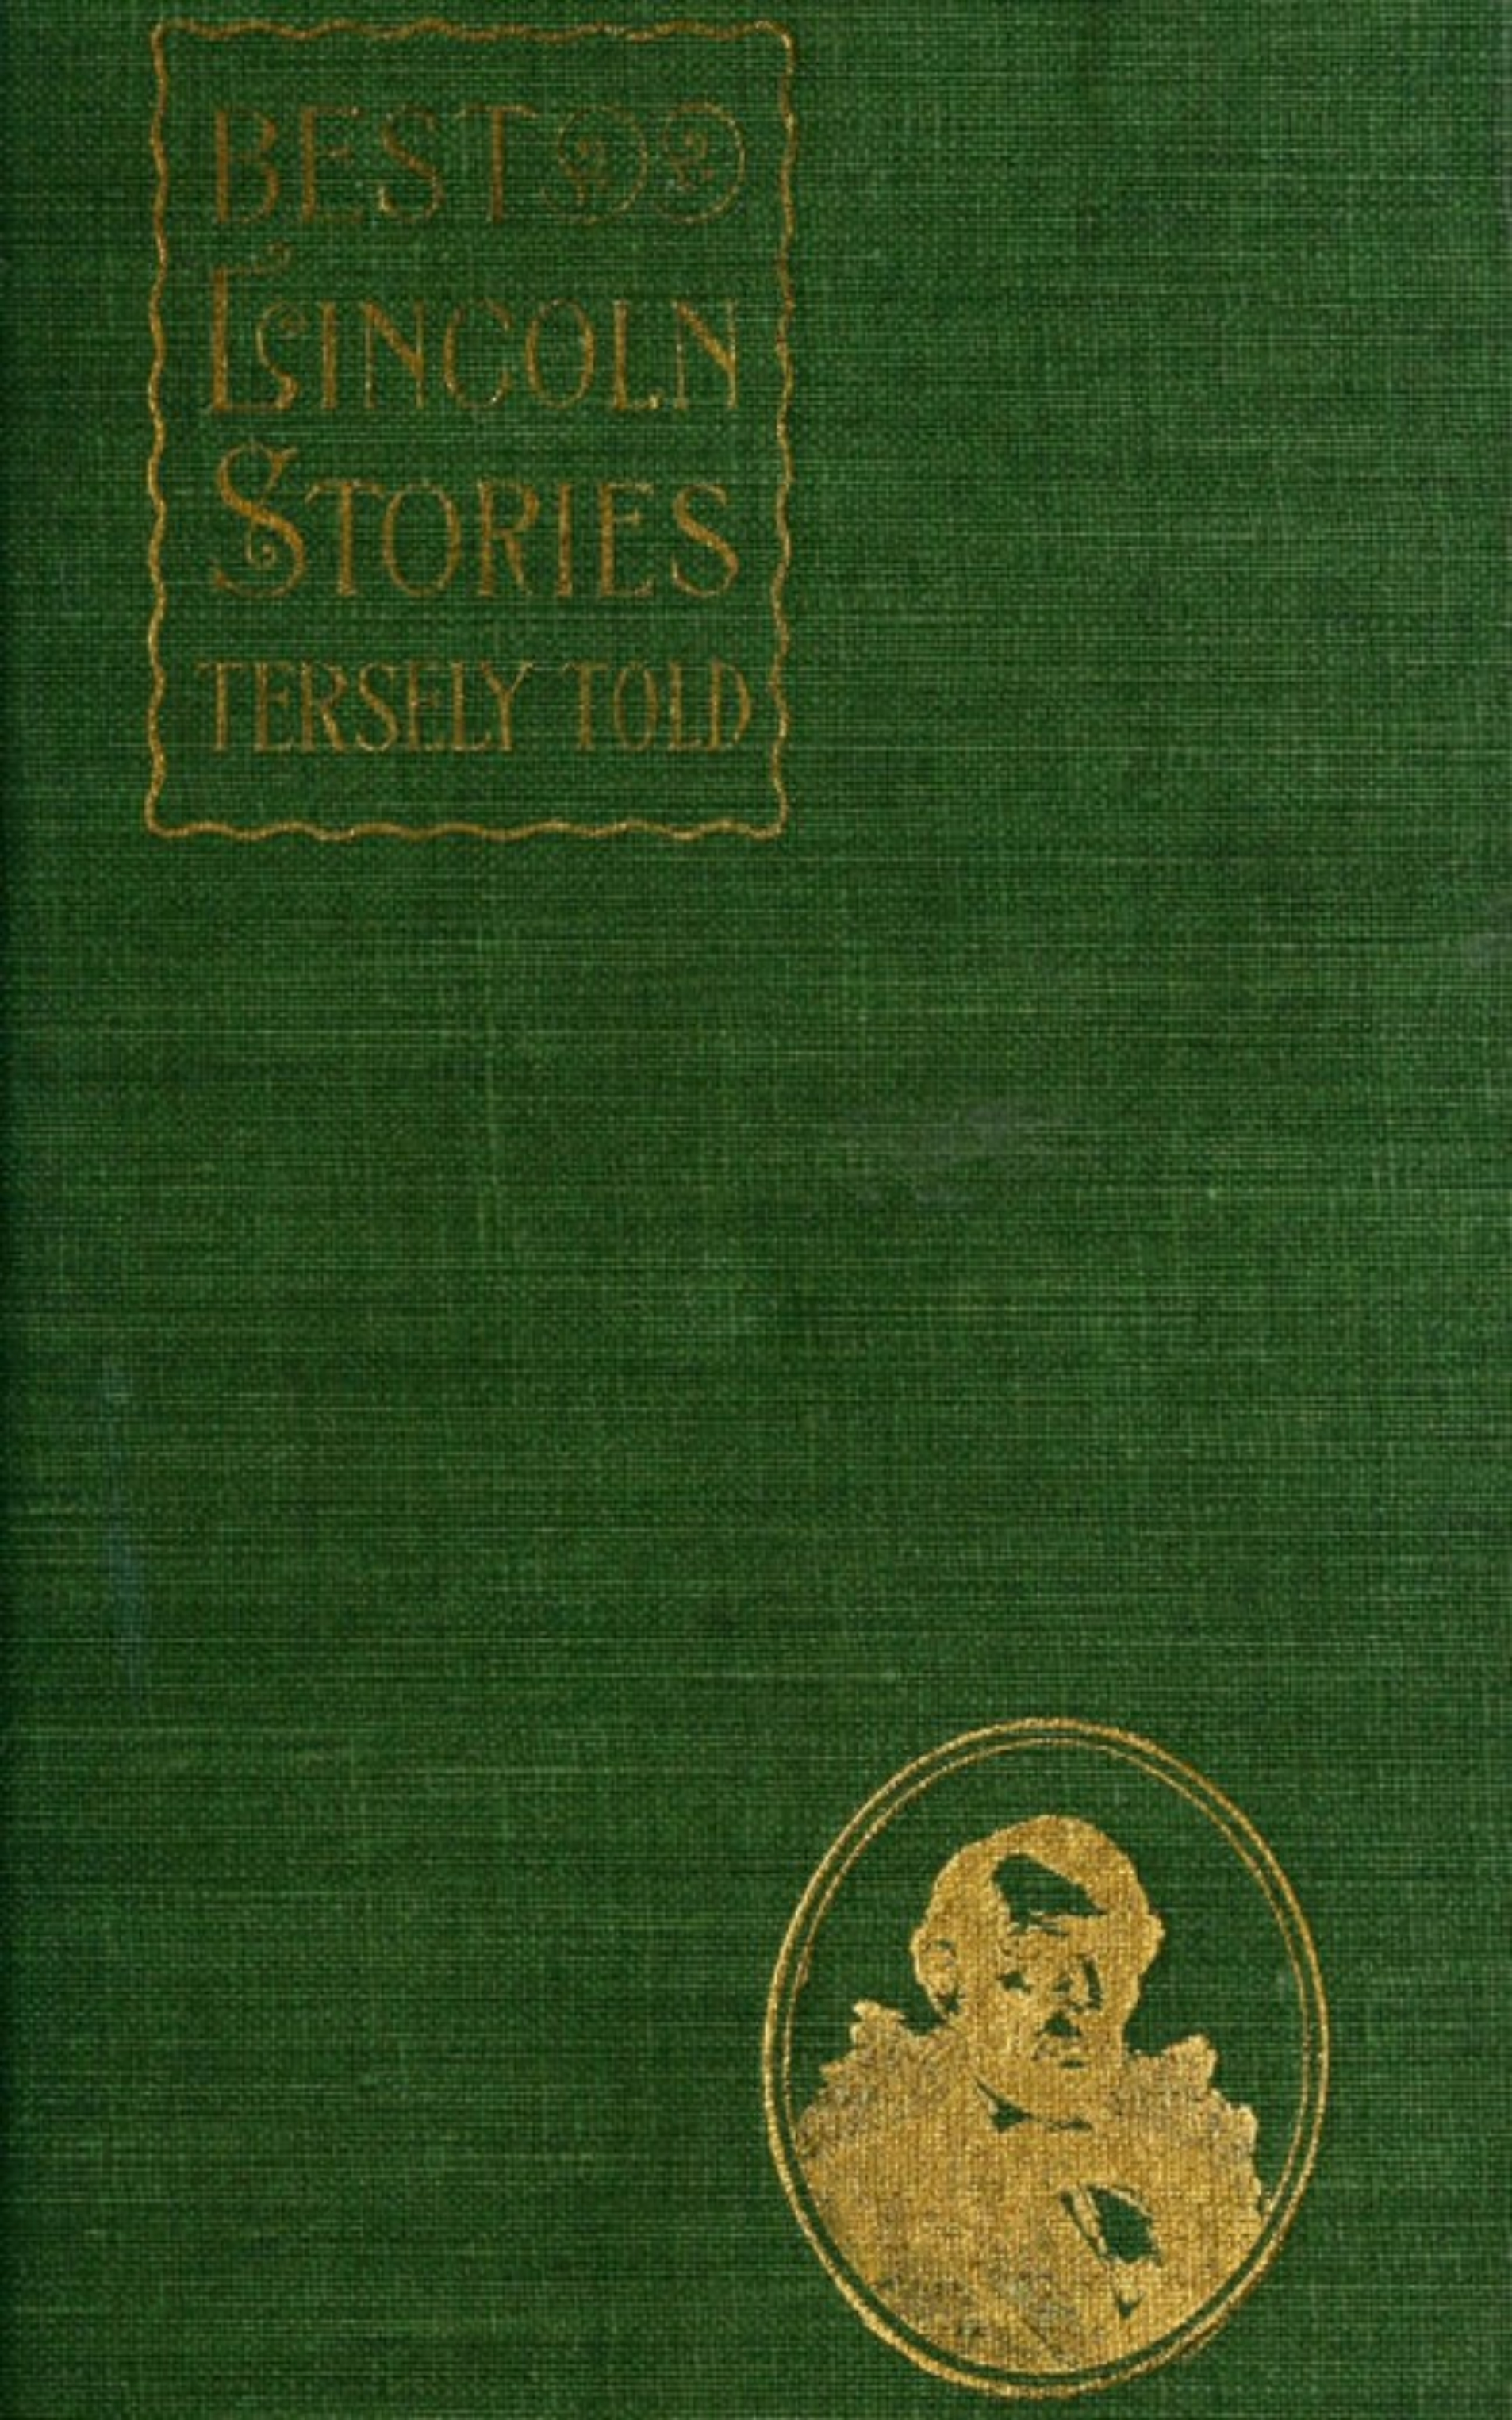 James E. Gallaher Best Lincoln stories, tersely told james e causey twisted